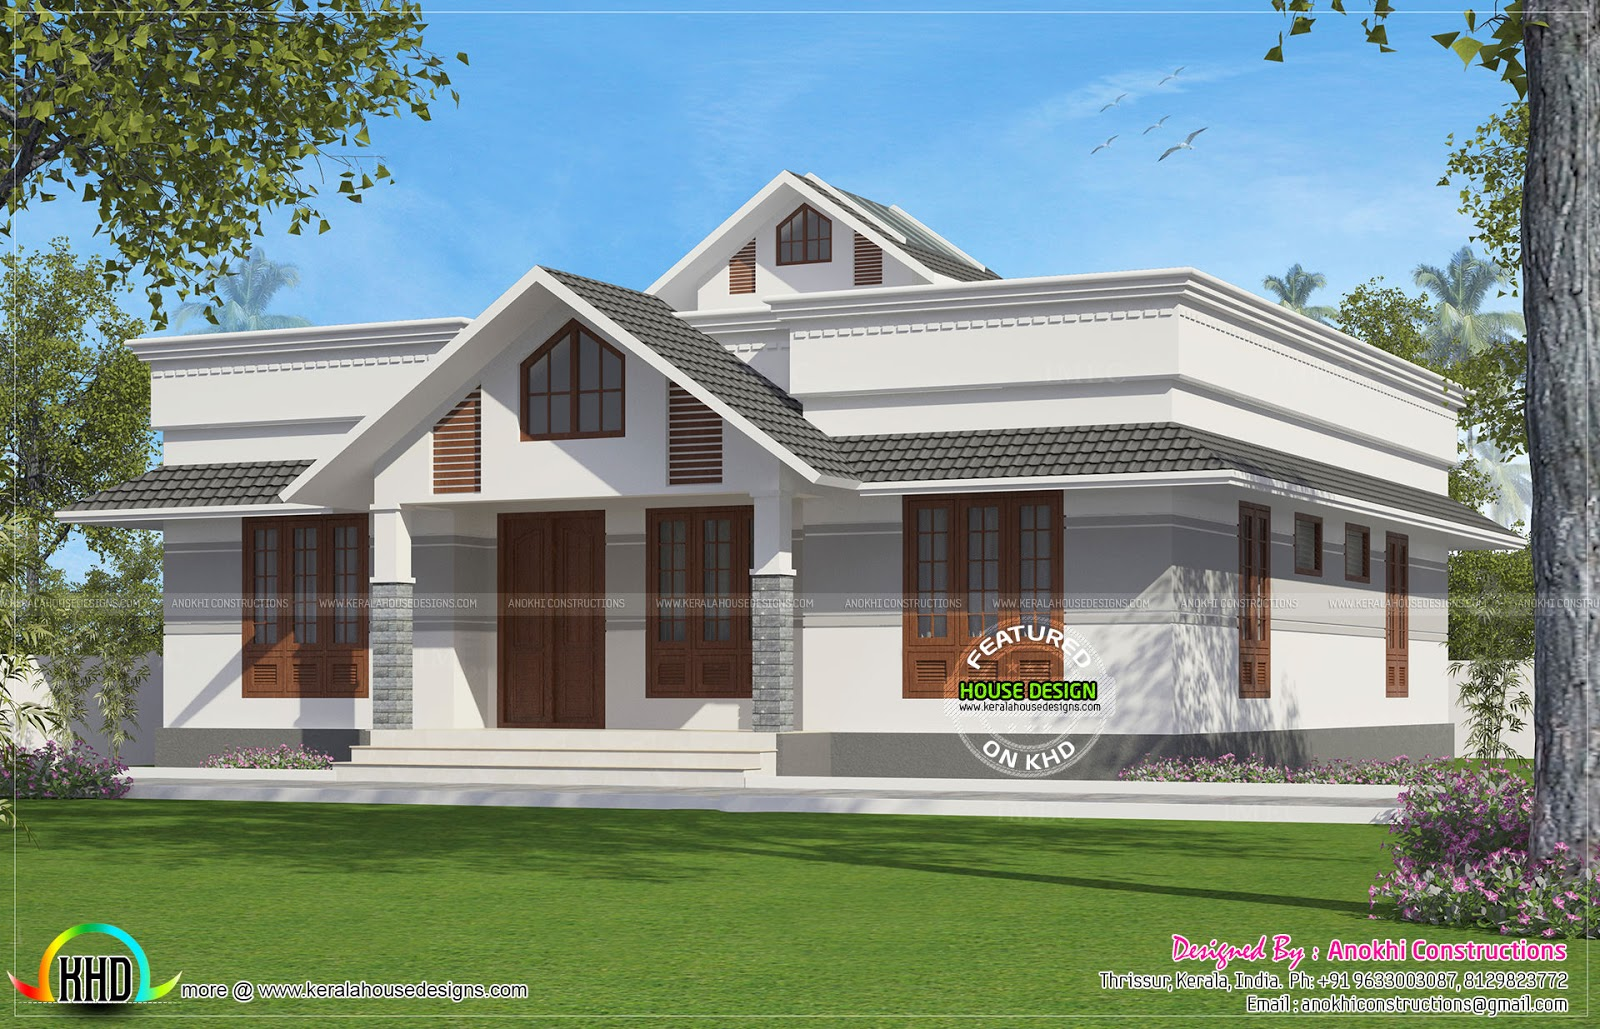 1330 square feet small house plan kerala home design and for Small square footage house plans